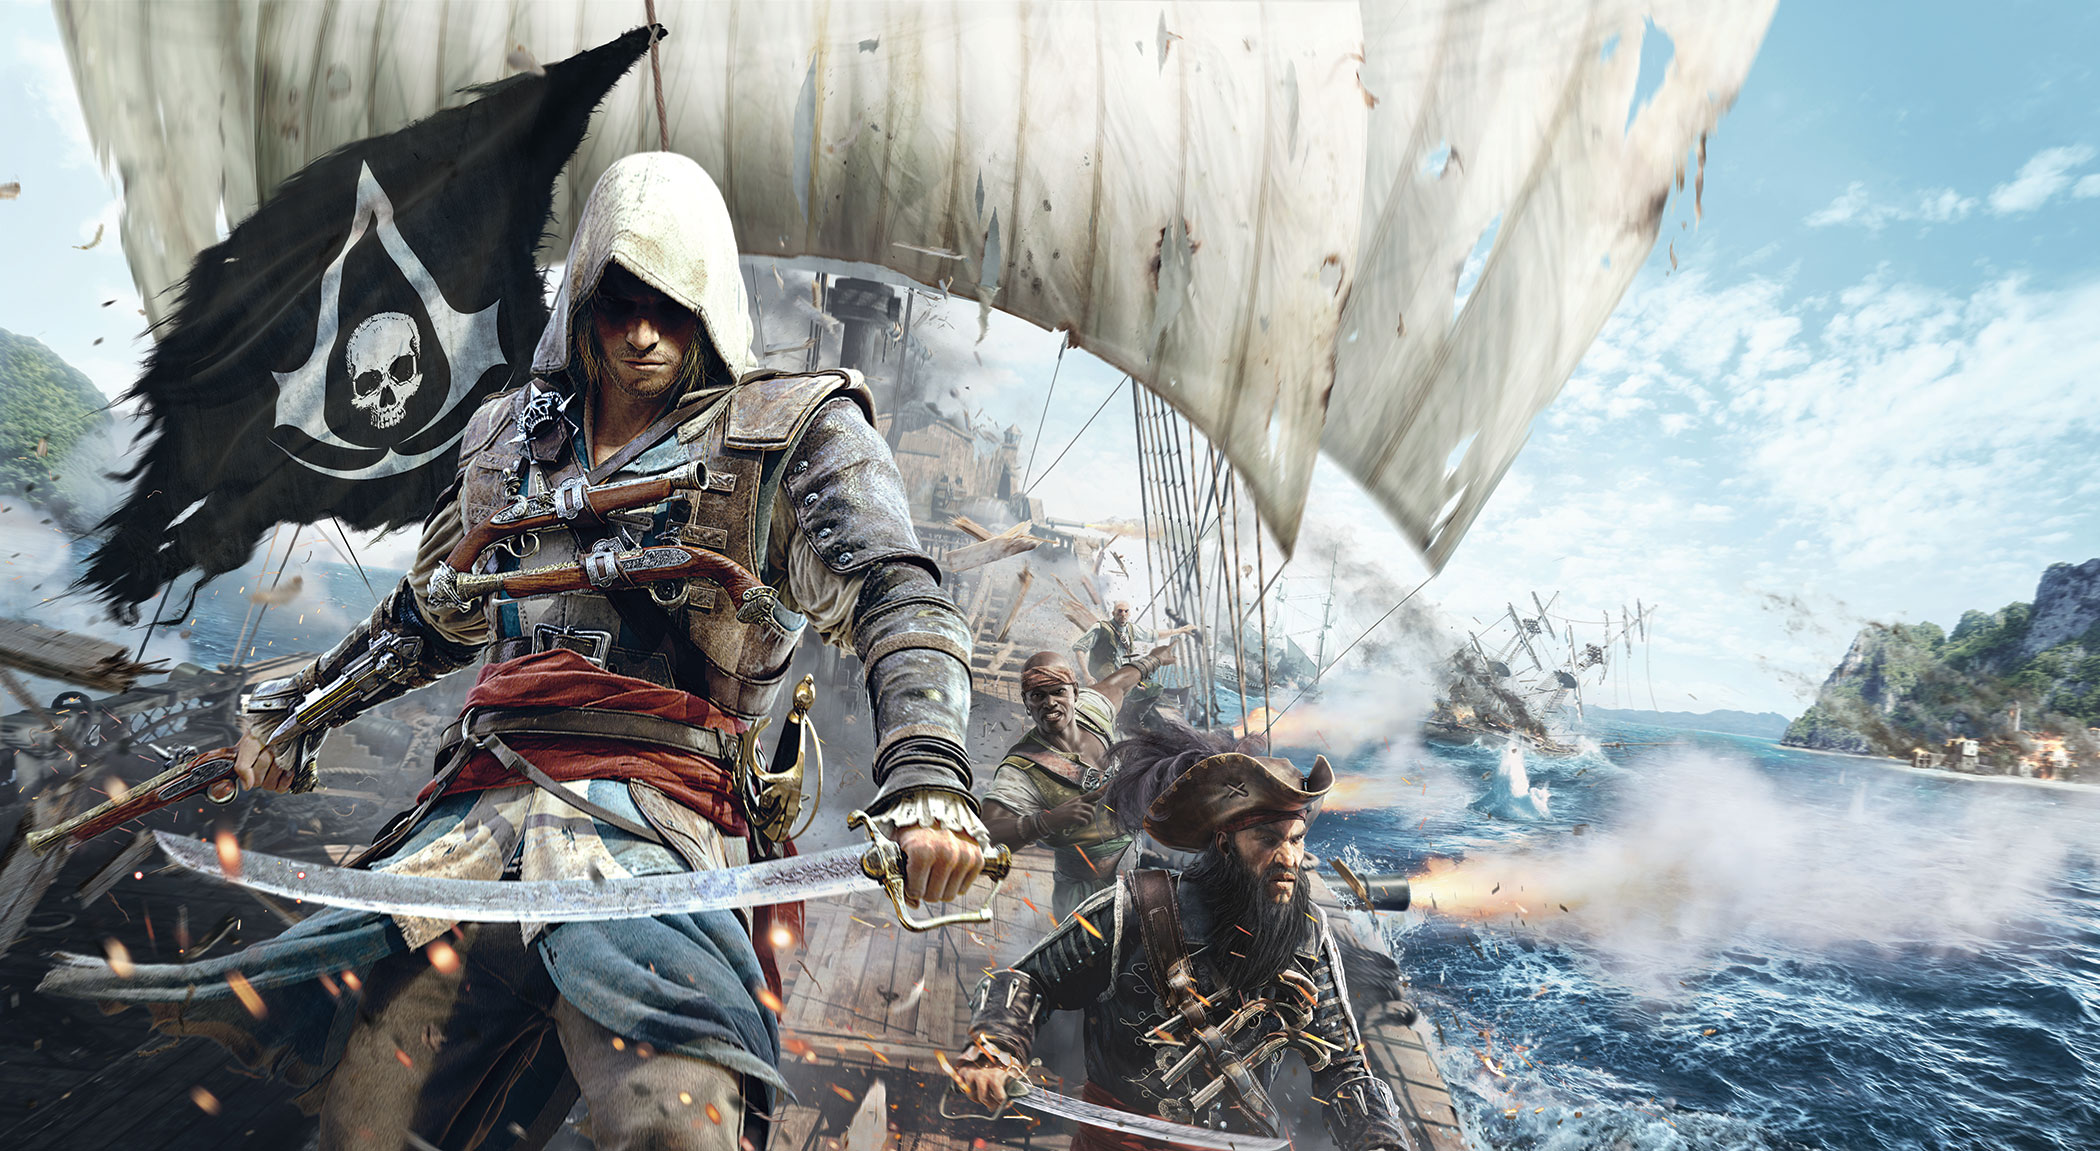 AT_ASSASINS_CREED_Black_Flag_img_01